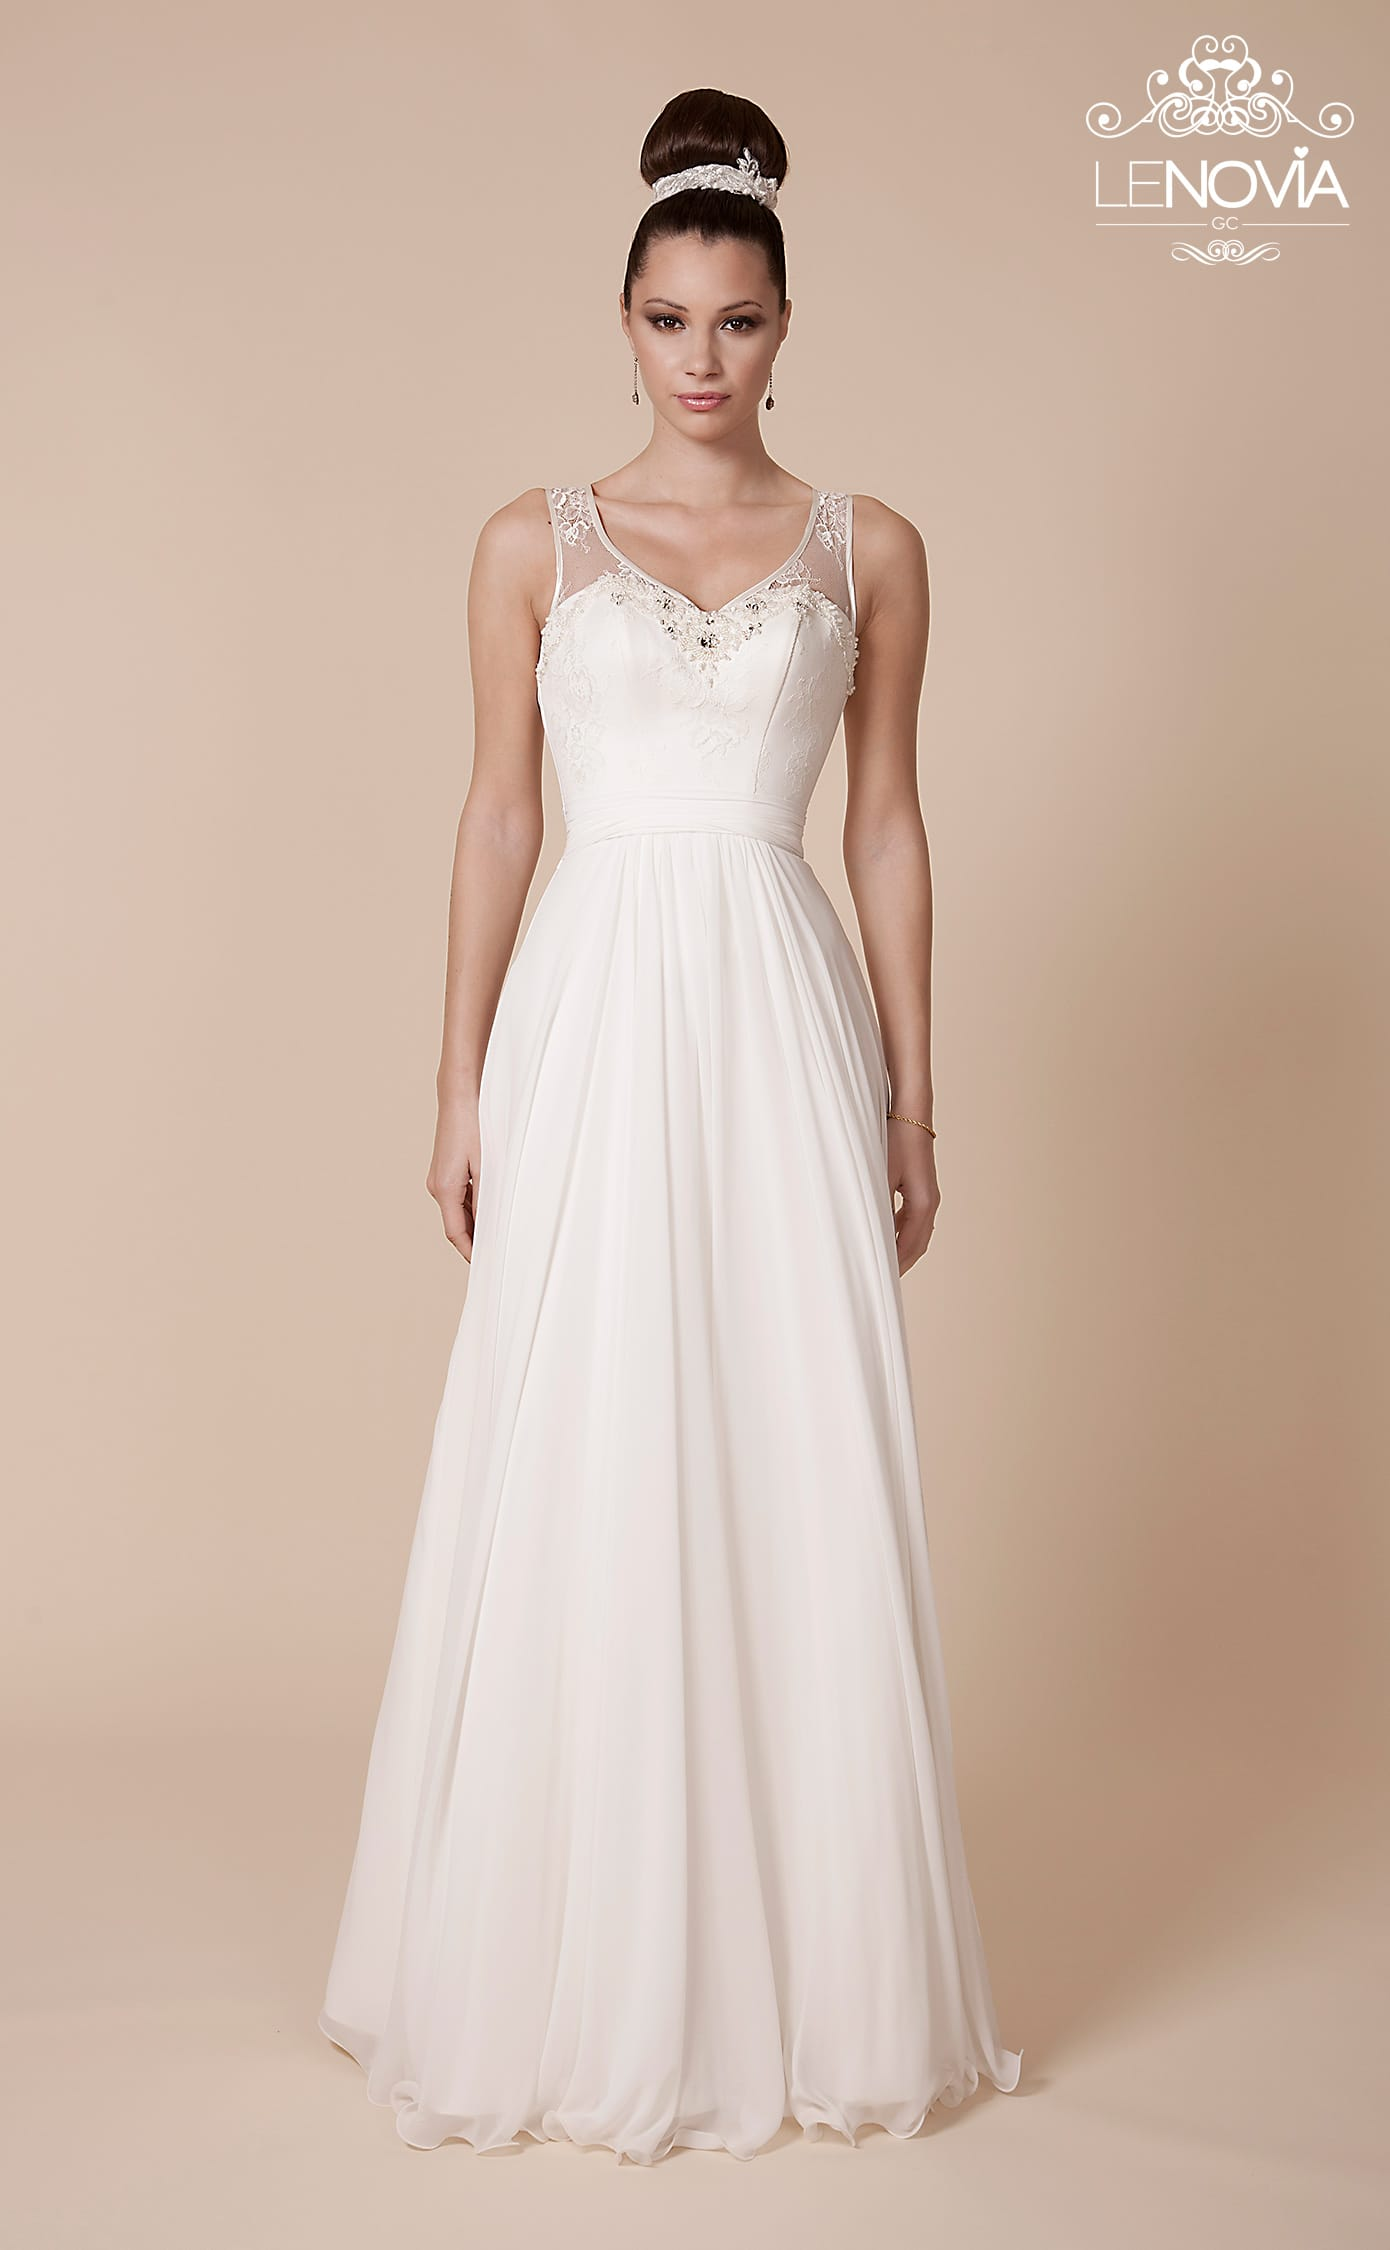 Lenovia sell my wedding dress online sell my wedding for Sell wedding dress online